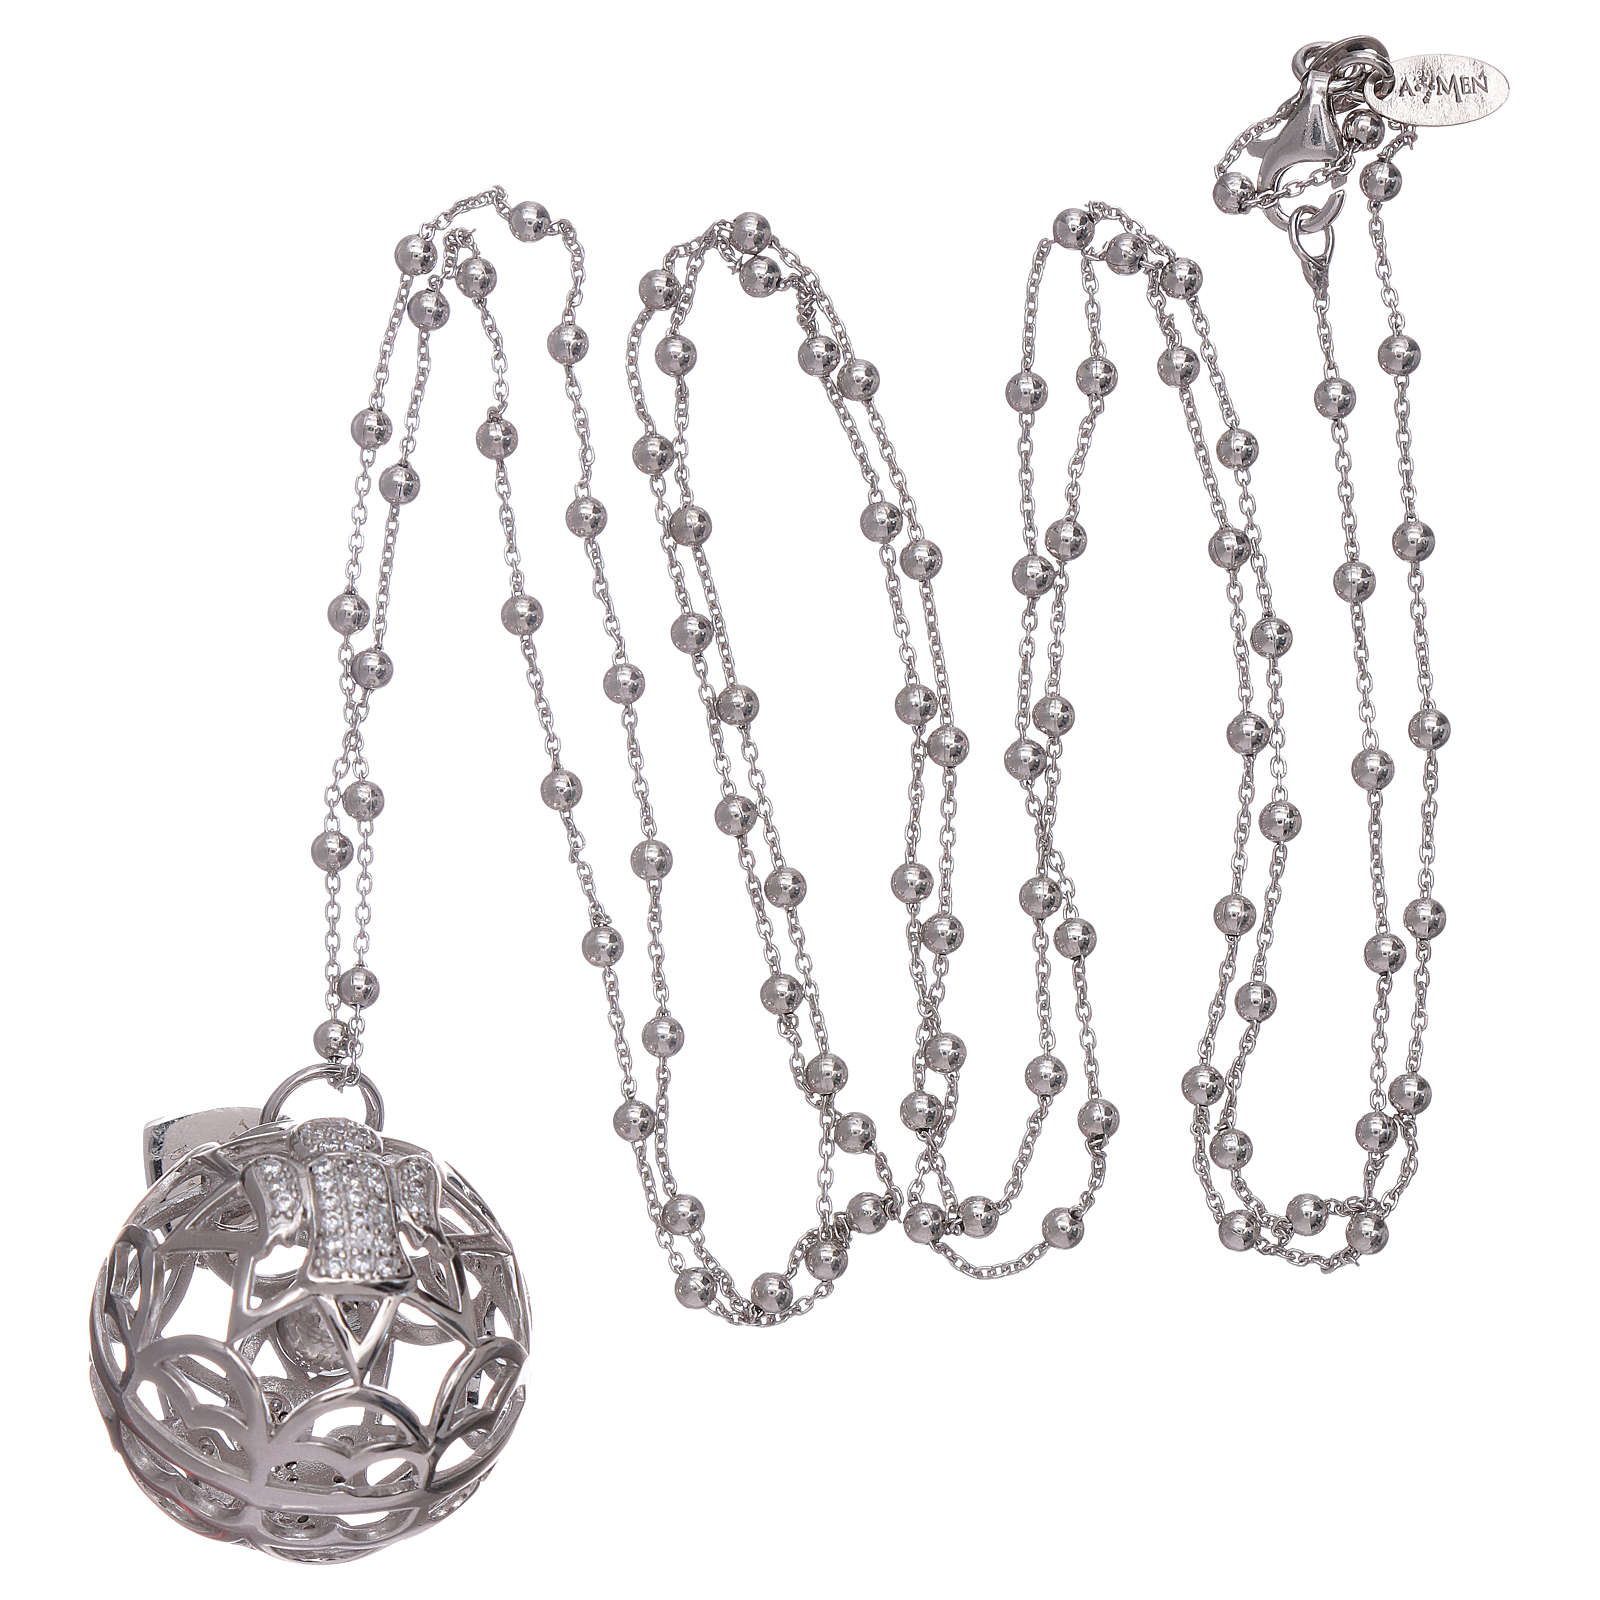 AMEN necklace with angel caller pendant in 925 sterling silver and zircons 4